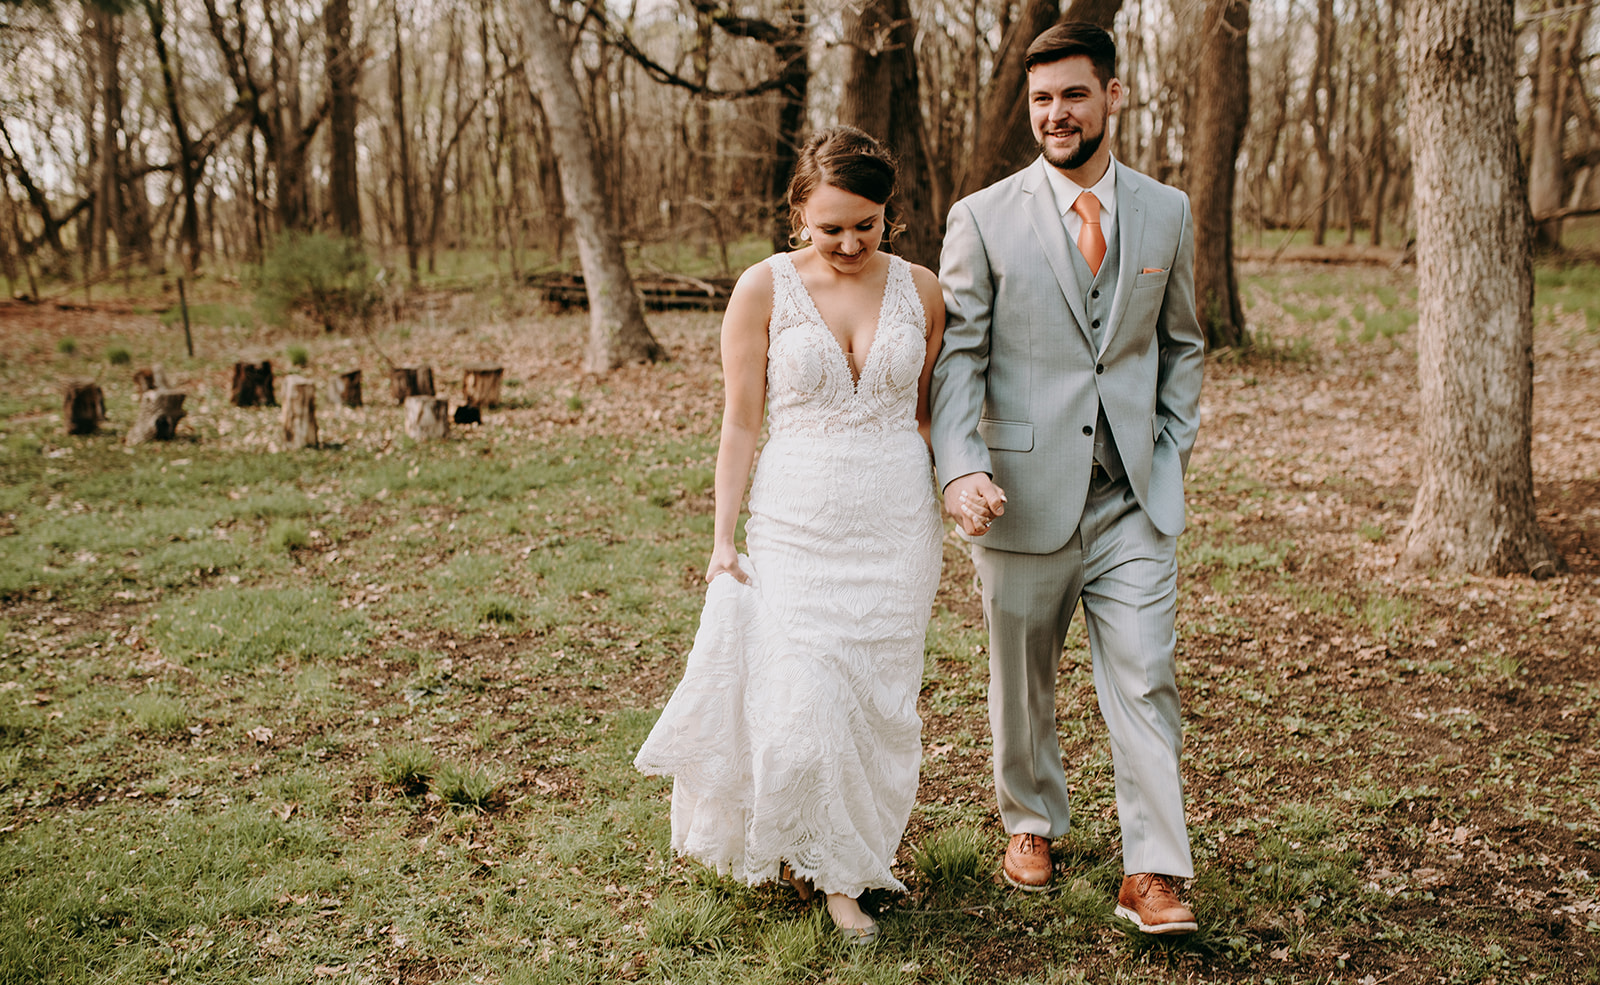 Bride & Groom Walking in the Woods.jpg